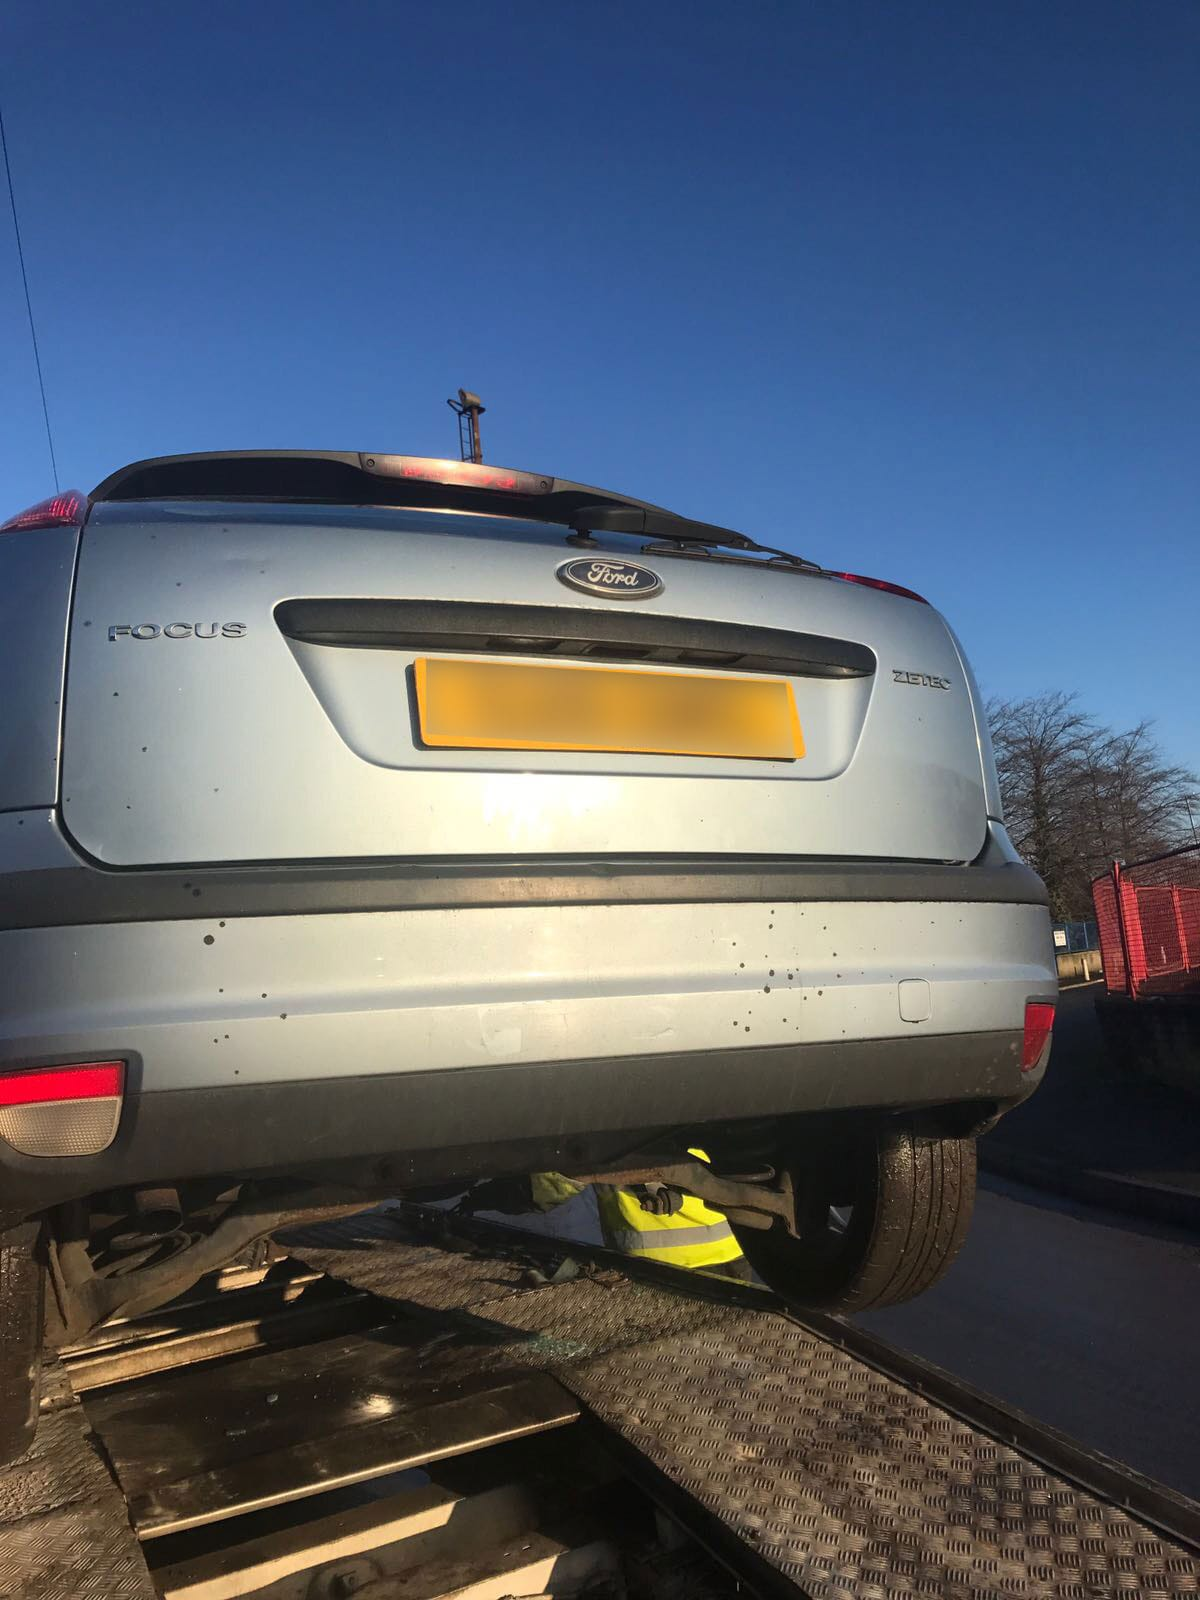 Ford Focus recovery